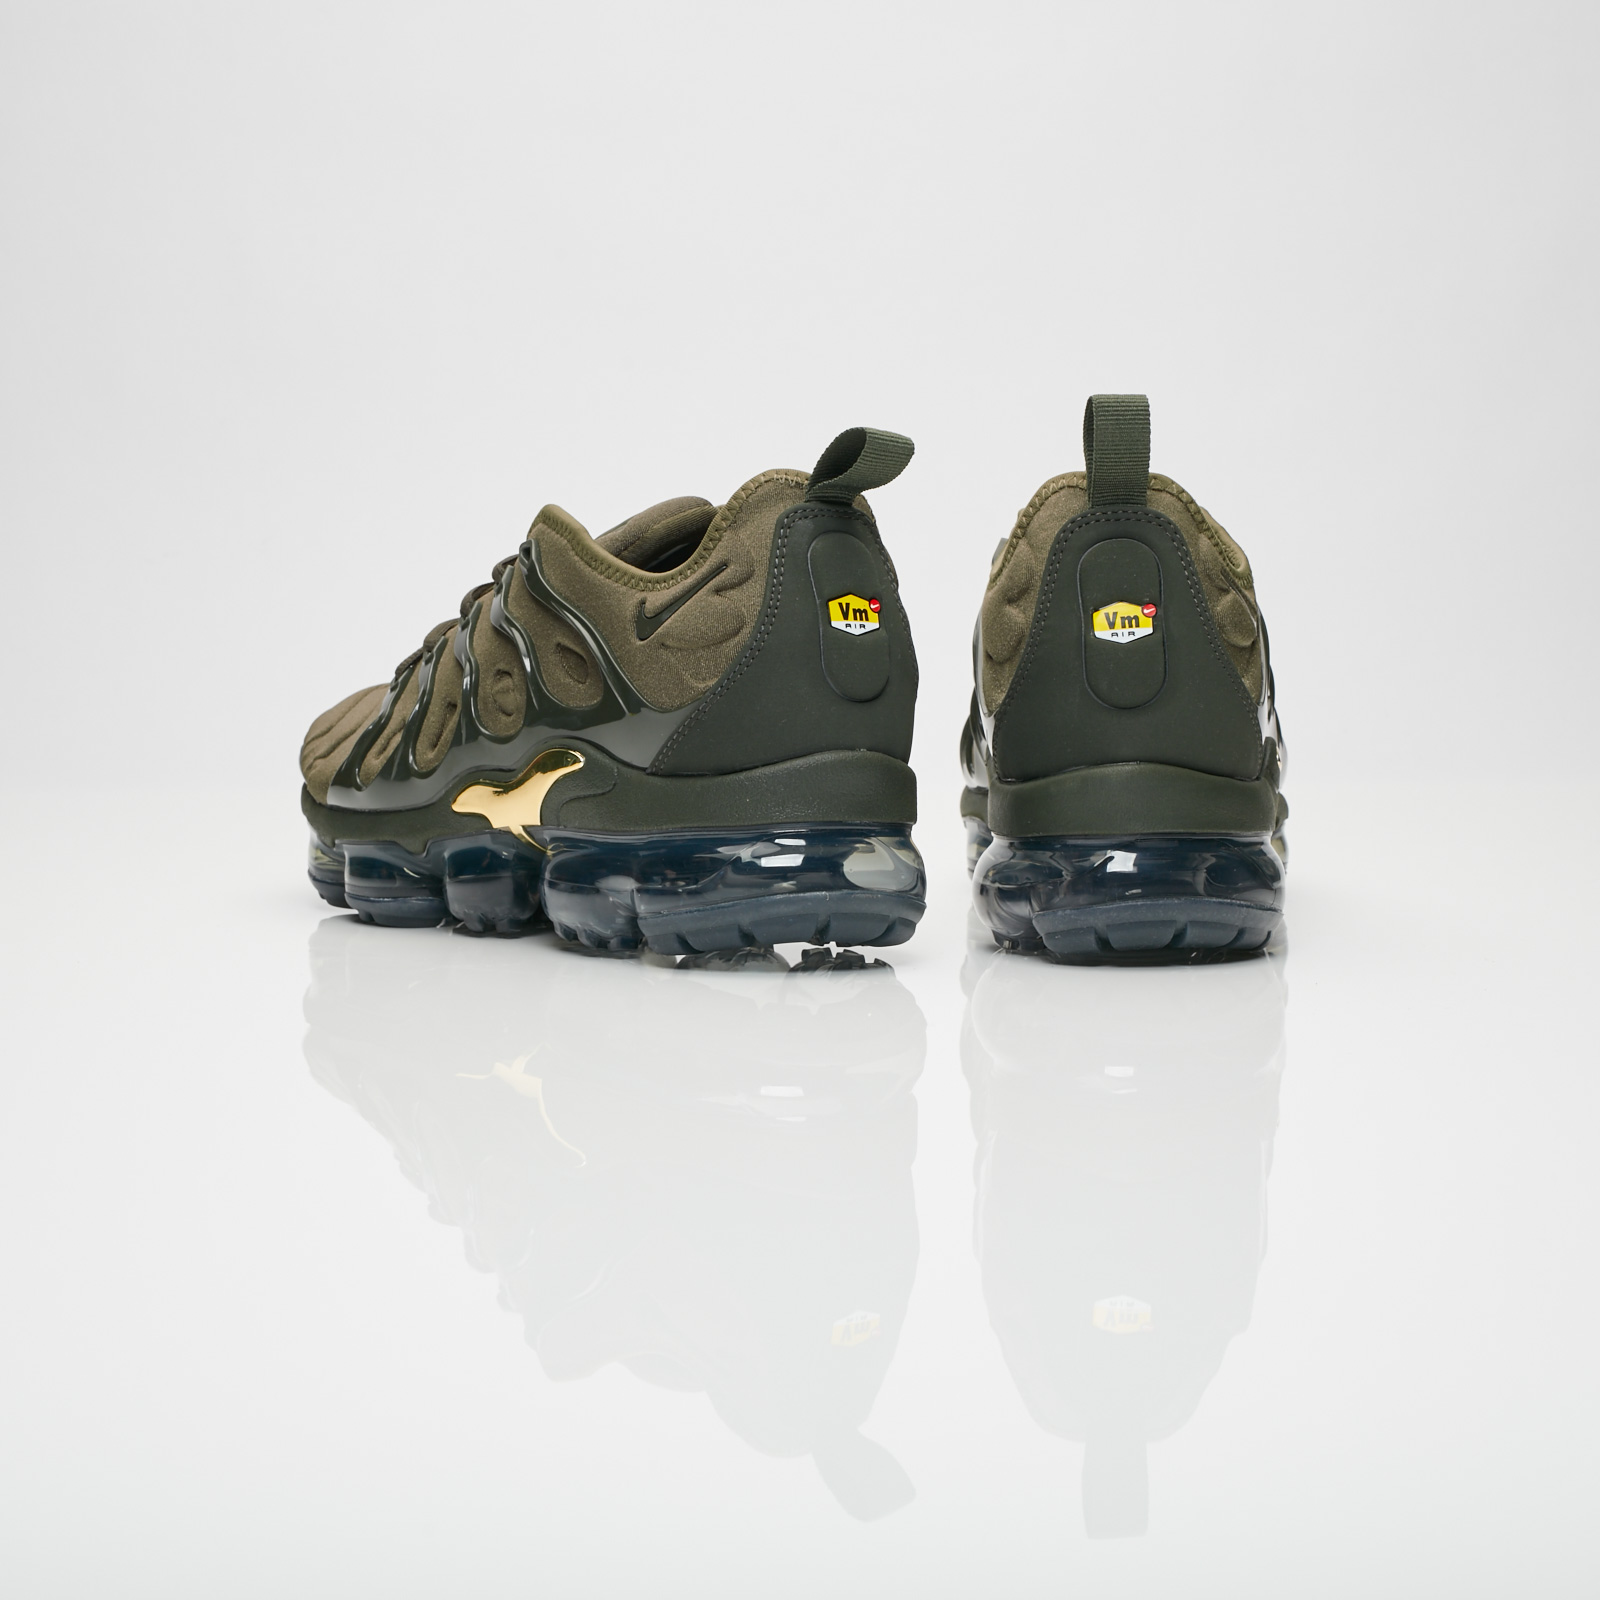 68ada398b52 Nike Air Vapormax Plus - 924453-300 - Sneakersnstuff